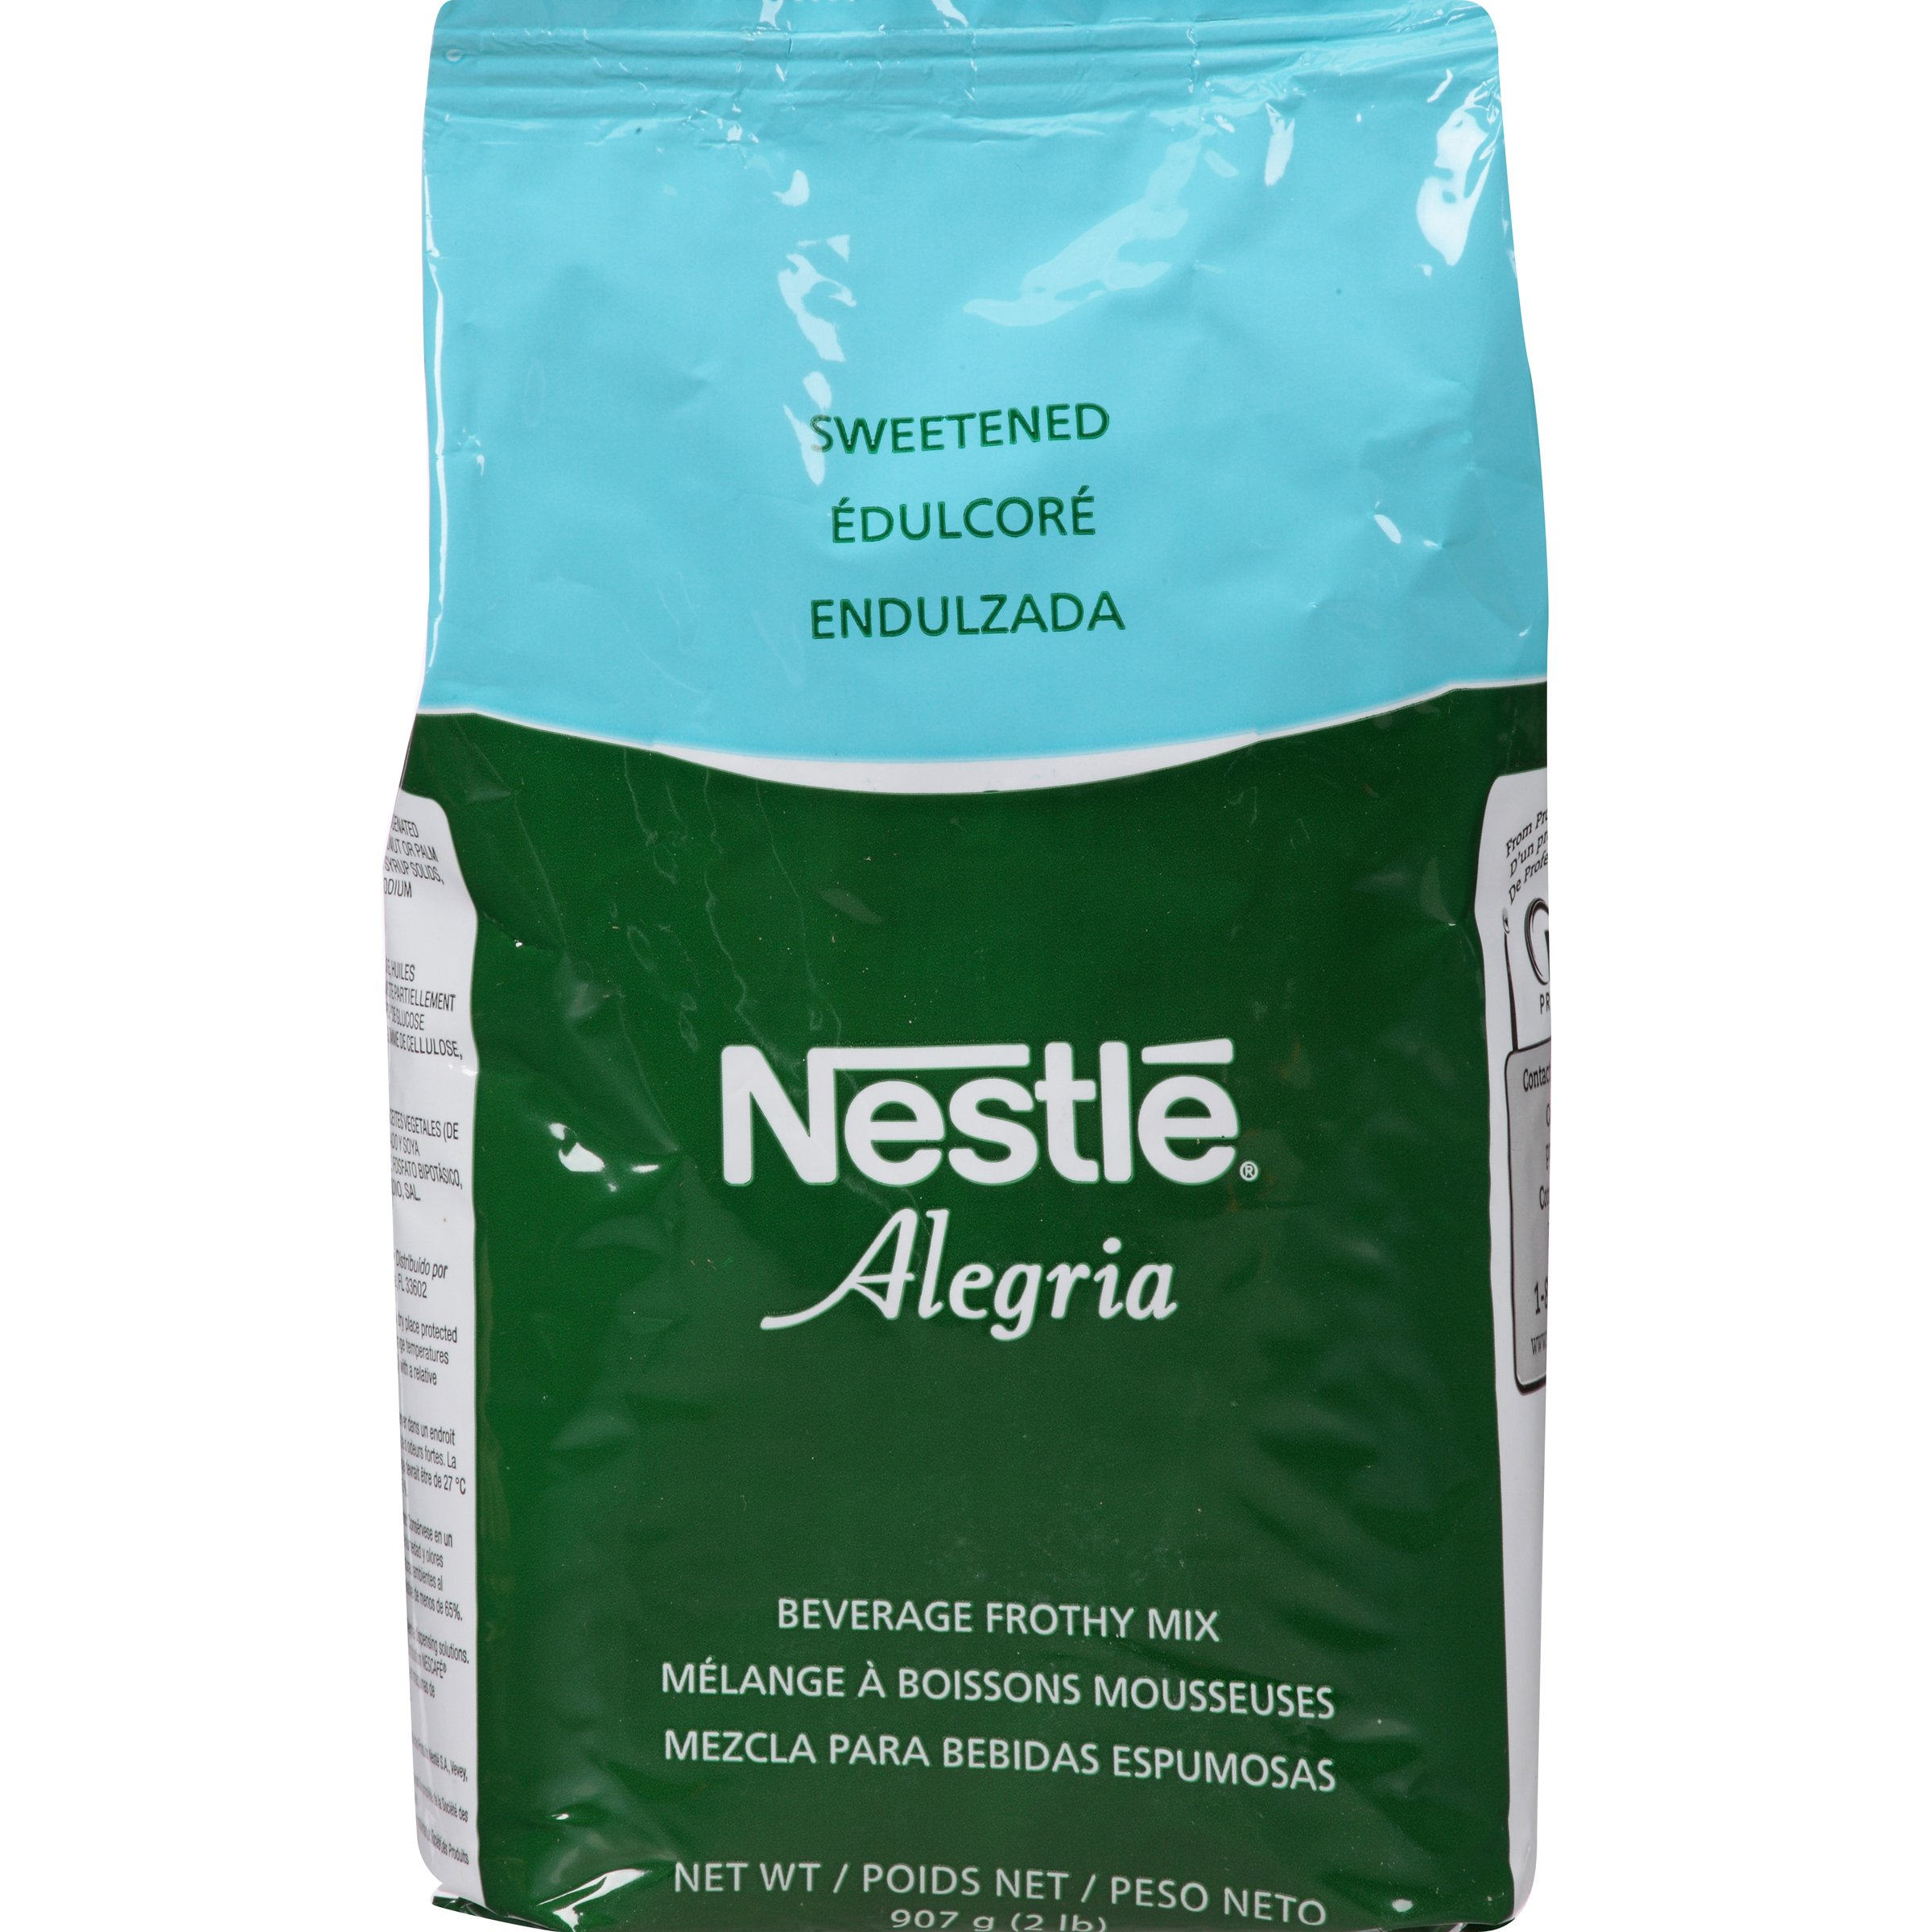 Nestle Alegria, Sweetened Beverage Frothy Mix, 32-Ounce Package